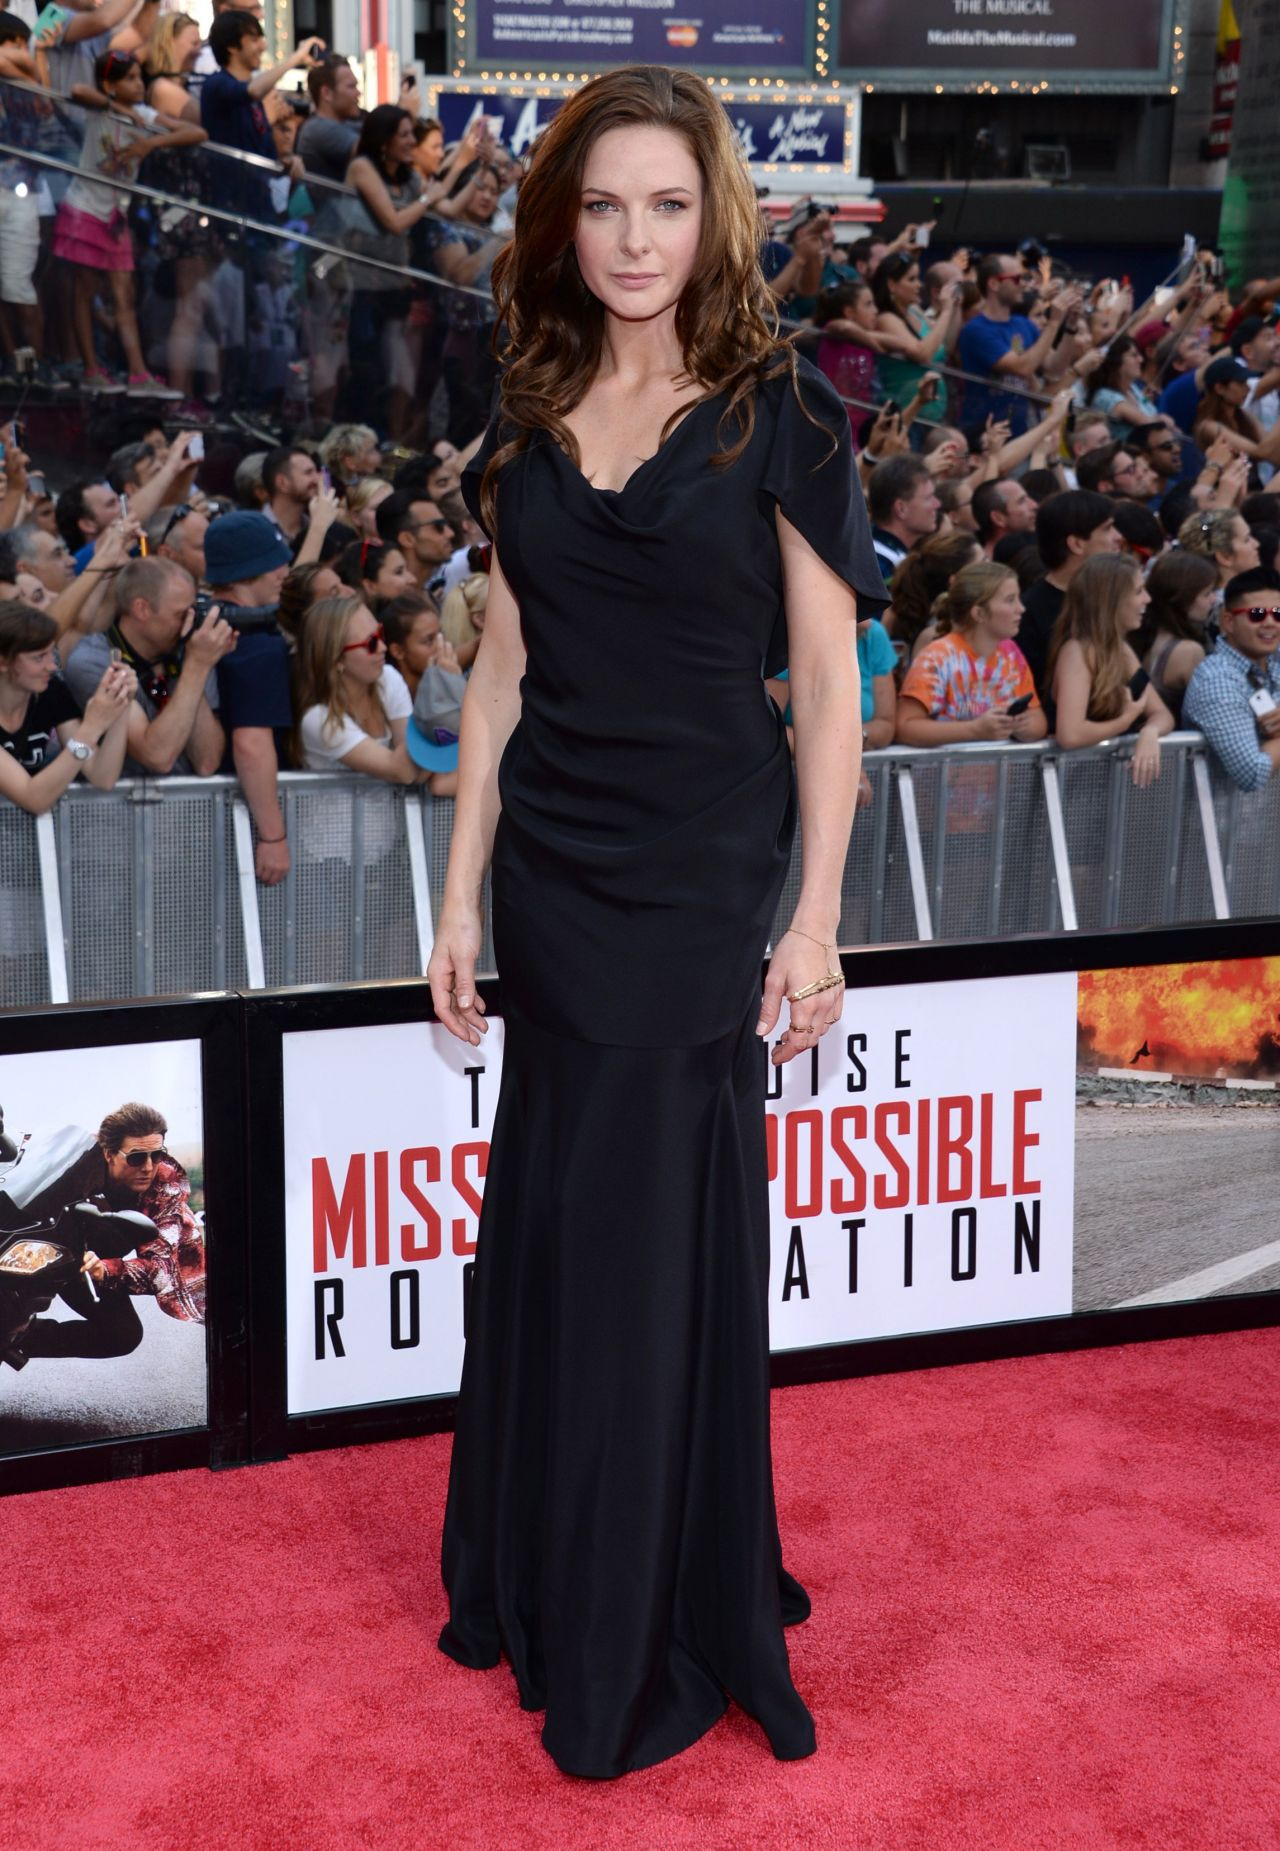 rebecca-ferguson-mission-impossible-rogue-nation-premiere-in-new-york-city_2